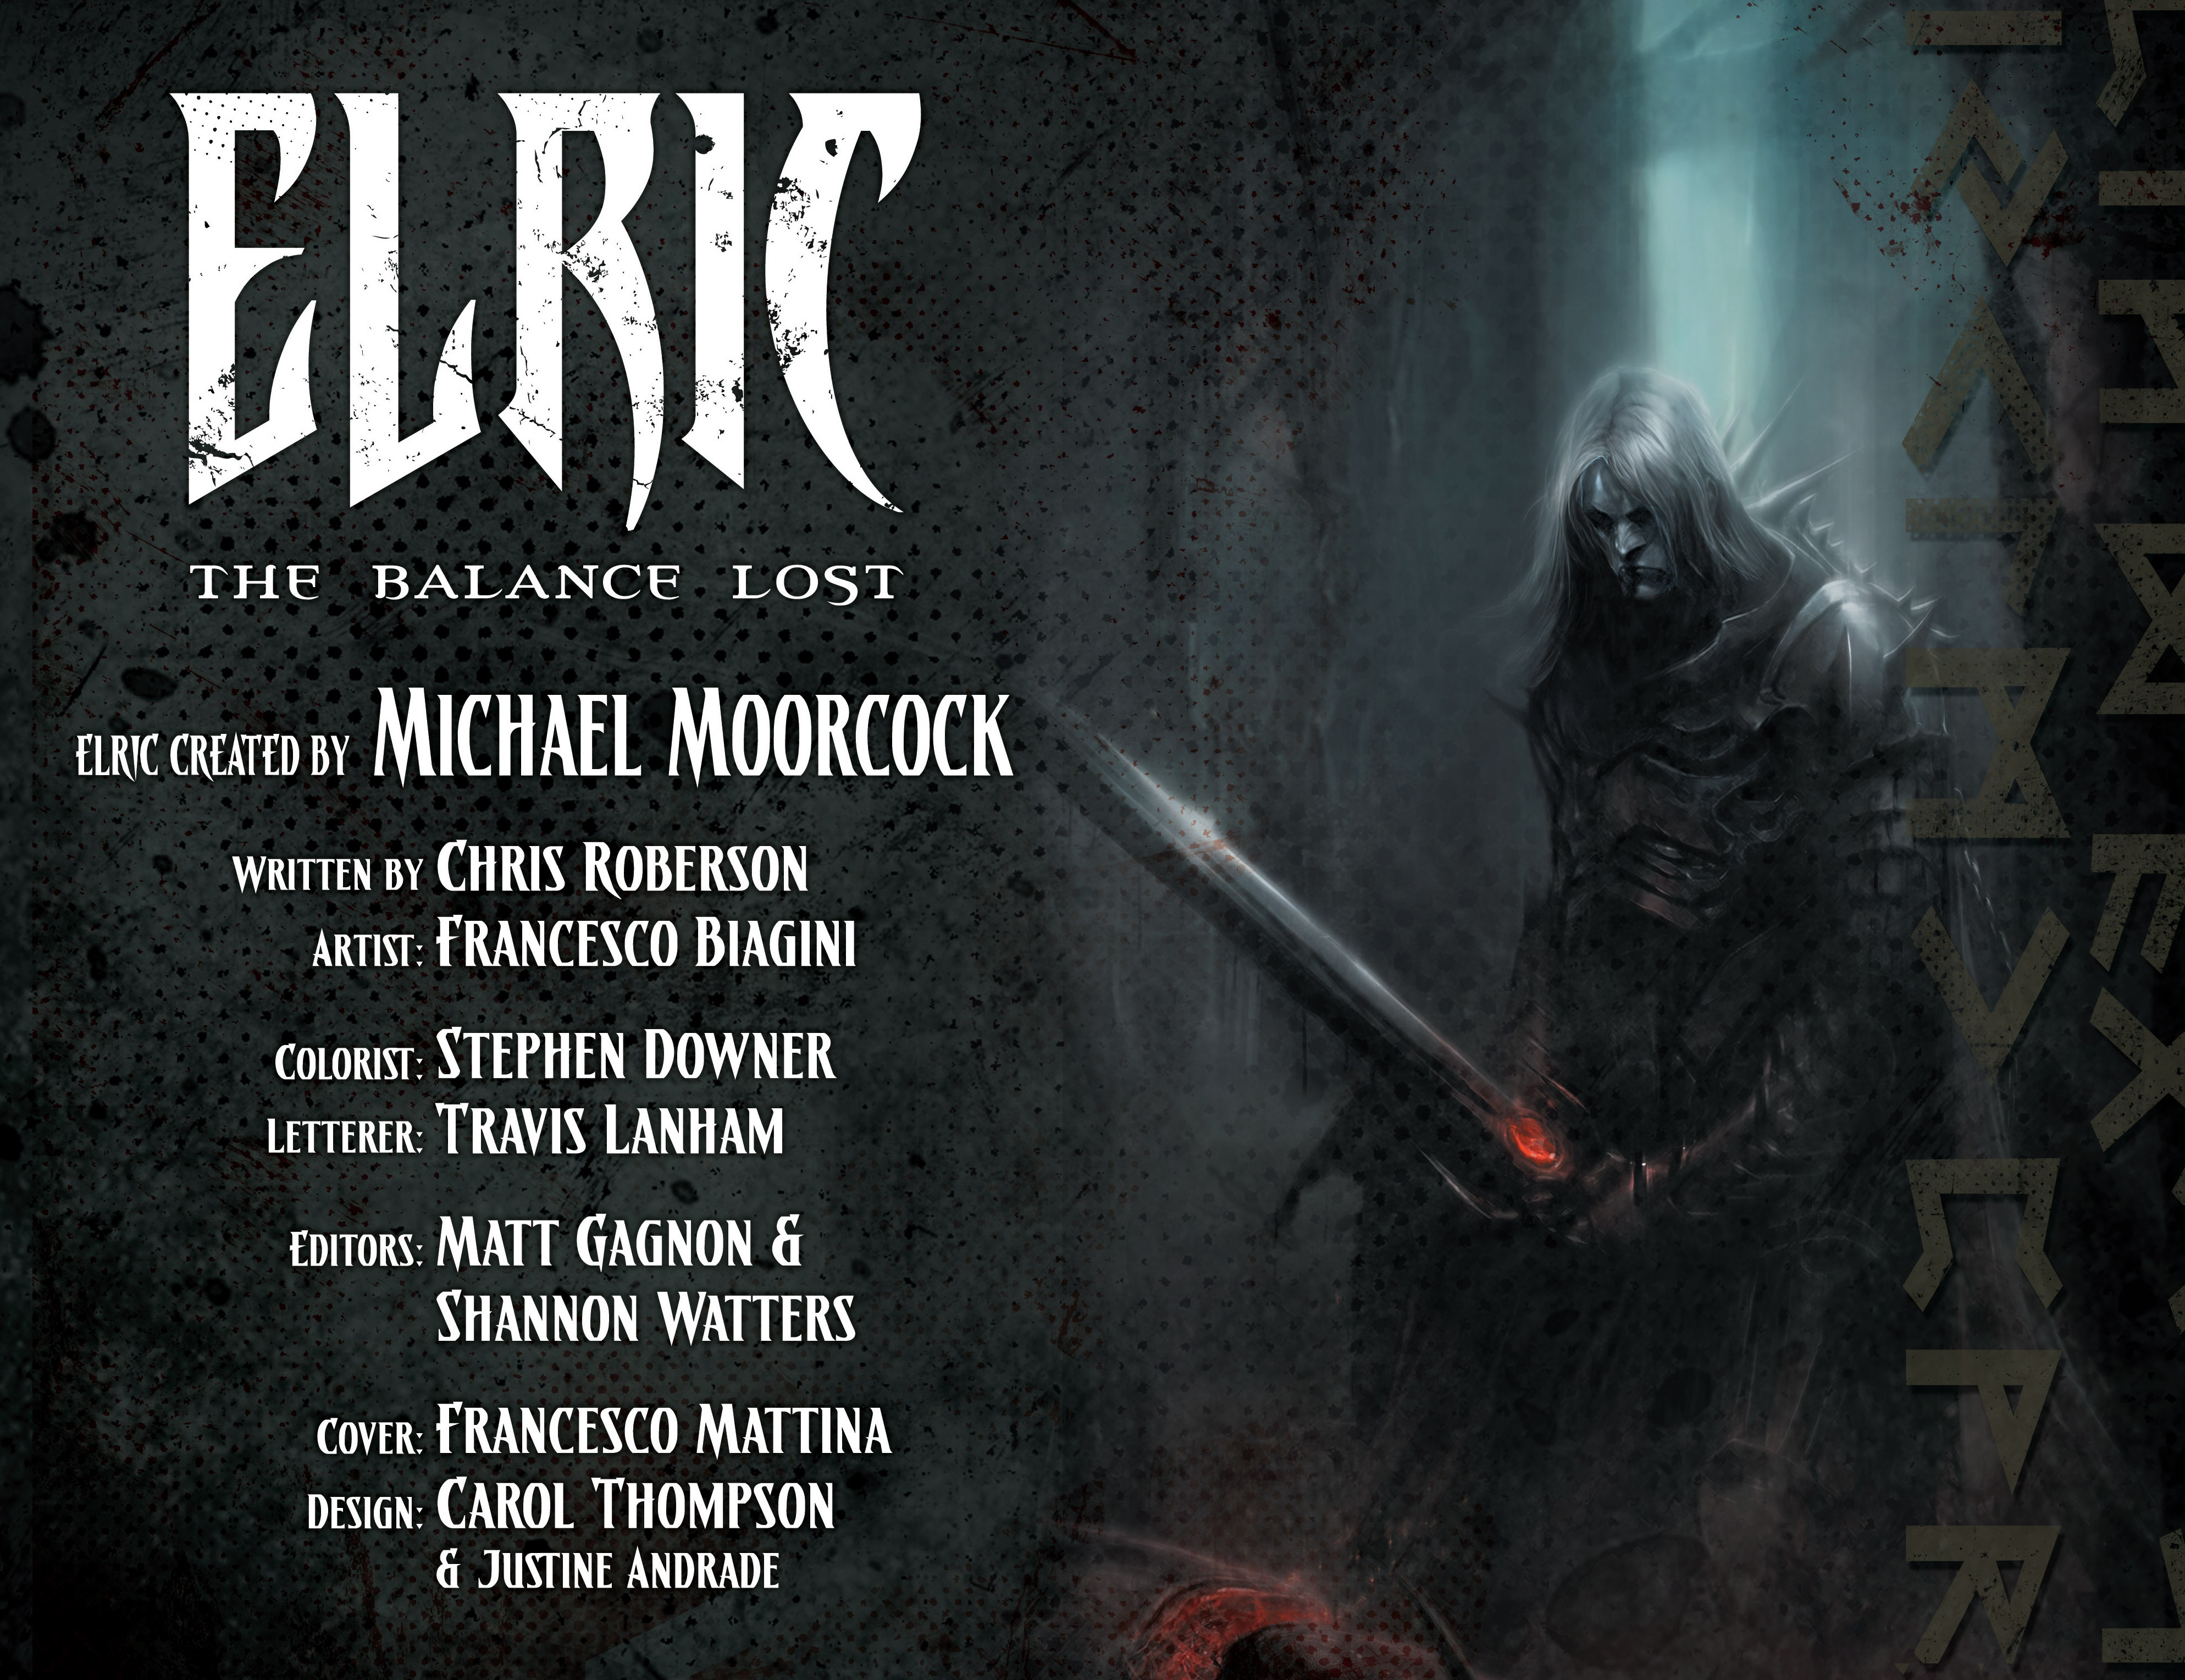 Read online Elric: The Balance Lost comic -  Issue # TPB 3 - 4